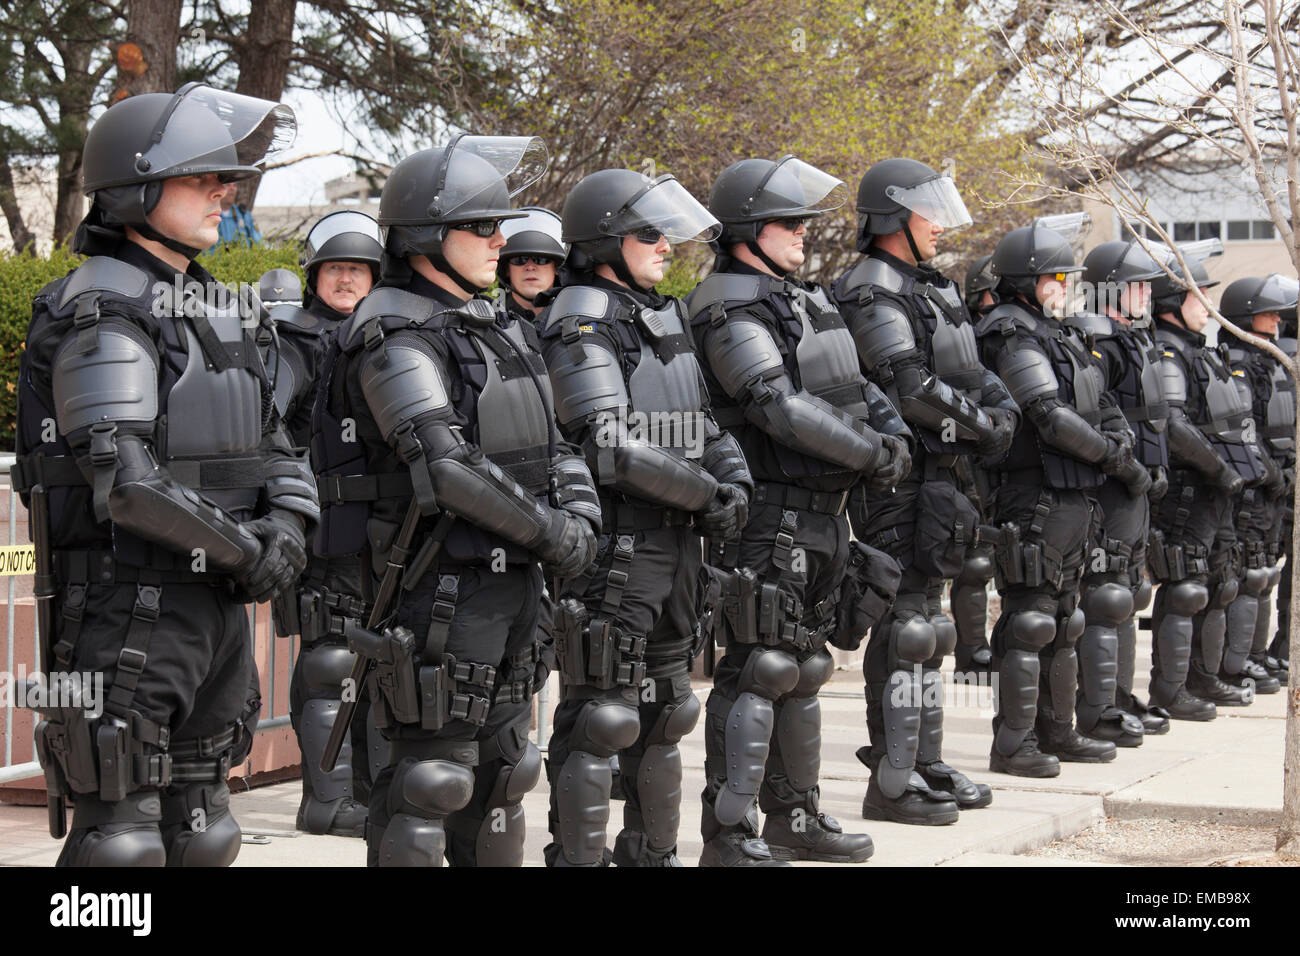 Police Riot Gear Stock Photos & Police Riot Gear Stock Images - Alamy